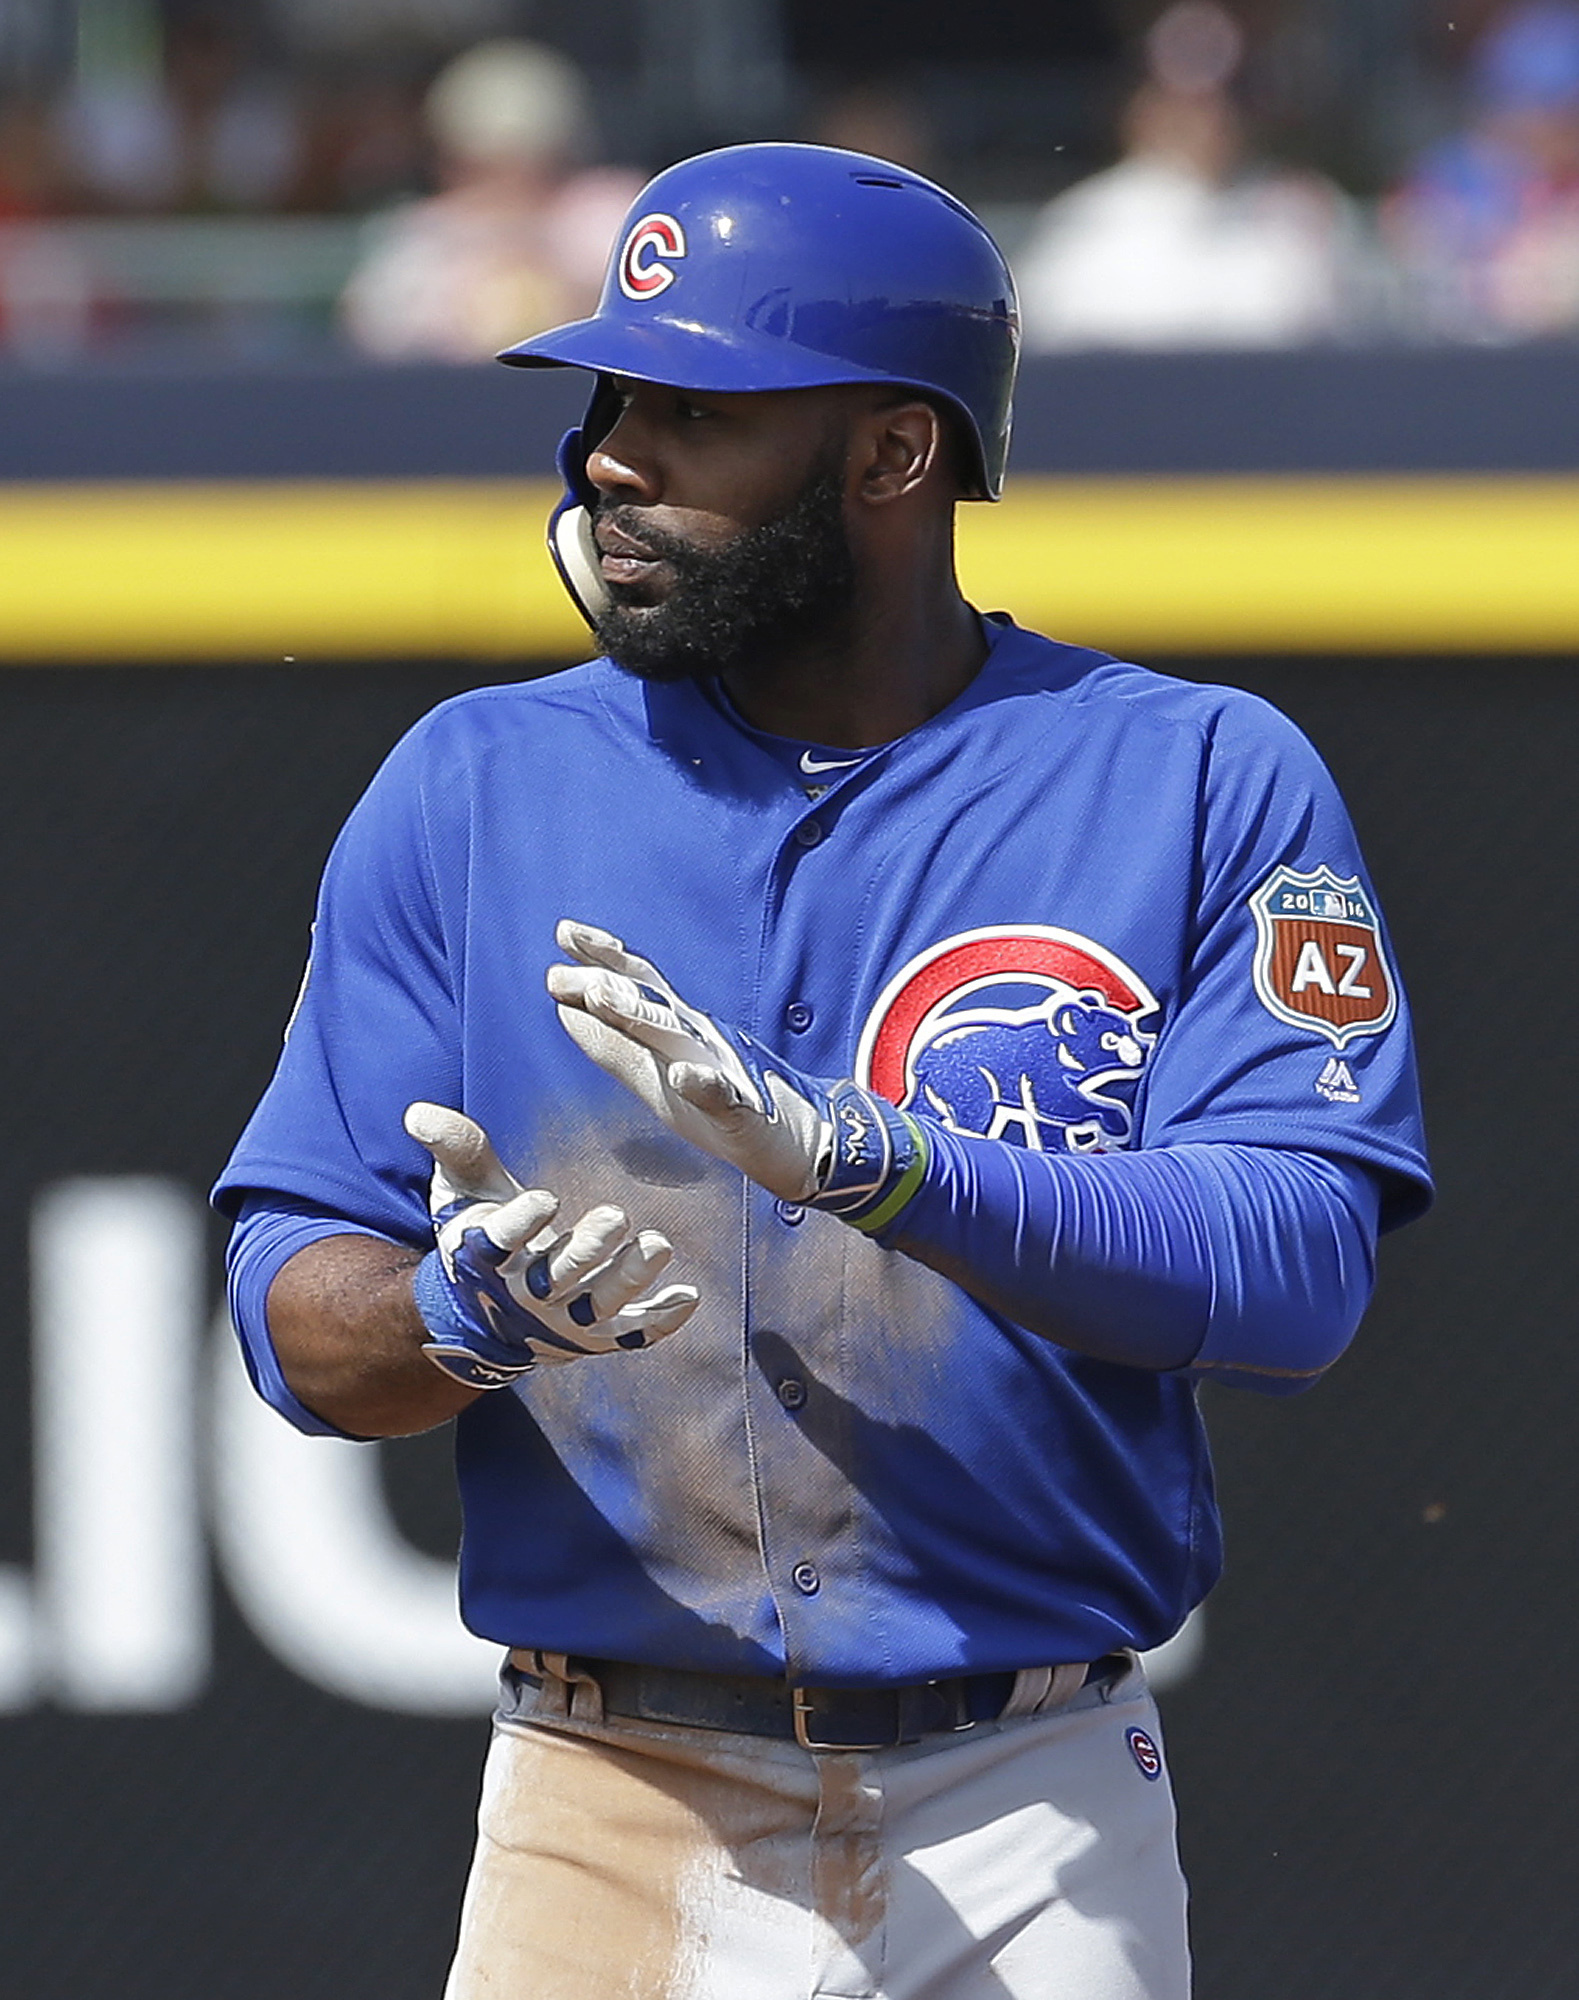 Chicago Cubs' Jason Heyward claps after hitting a three-run double during the third inning of a spring training baseball game against the San Diego Padres on Tuesday, March 15, 2016, in Peoria, Ariz. (AP Photo/Darron Cummings)